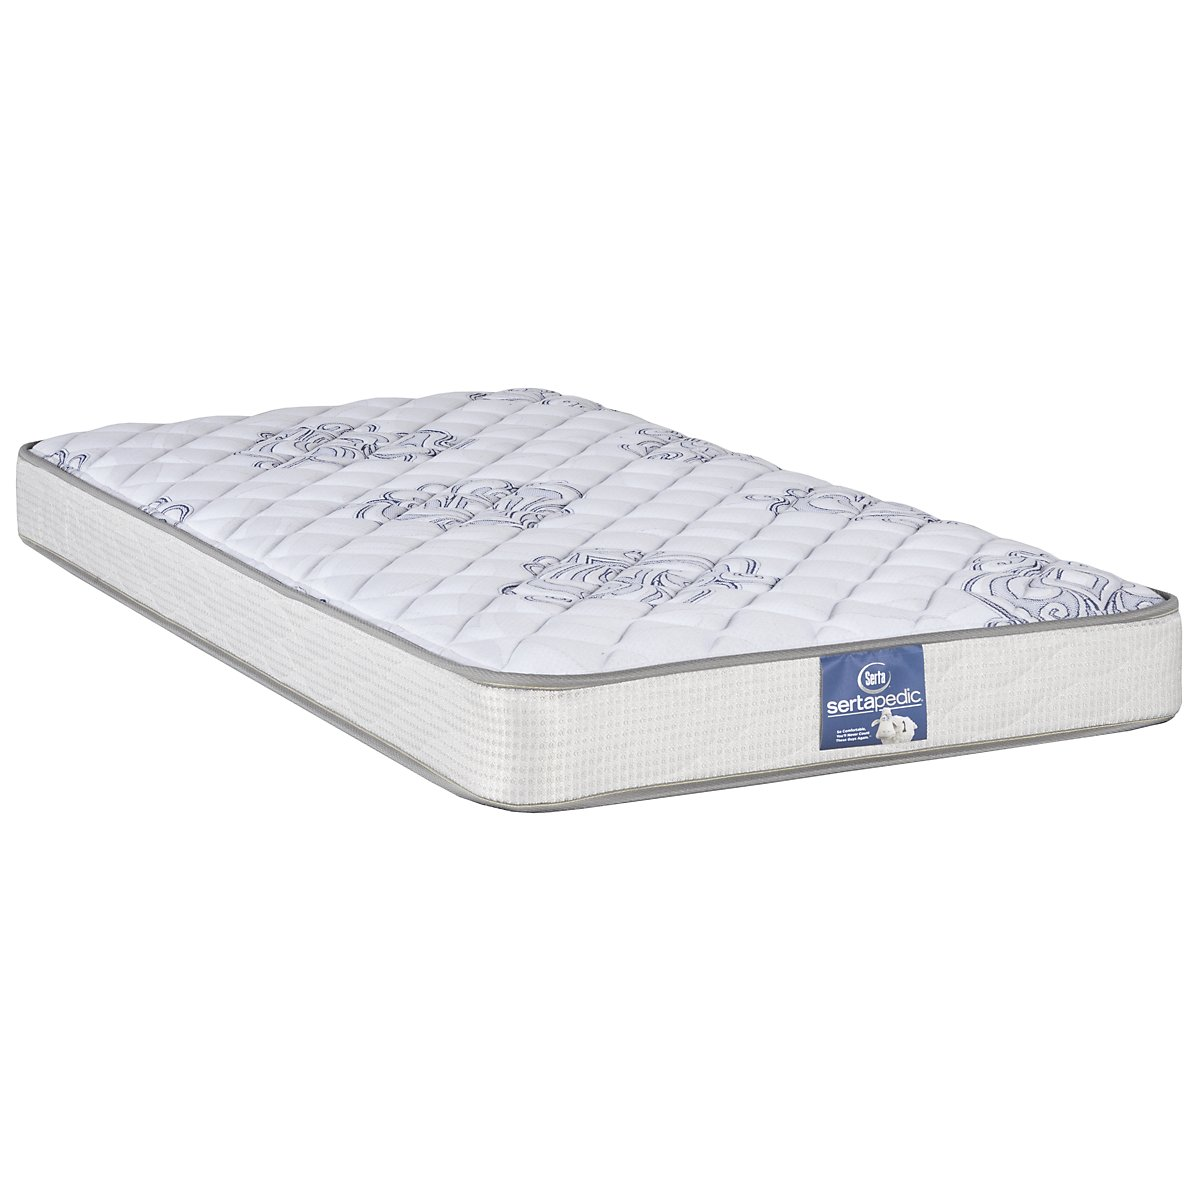 Serta Sertapedic Glenlawn Plush Innerspring Mattress